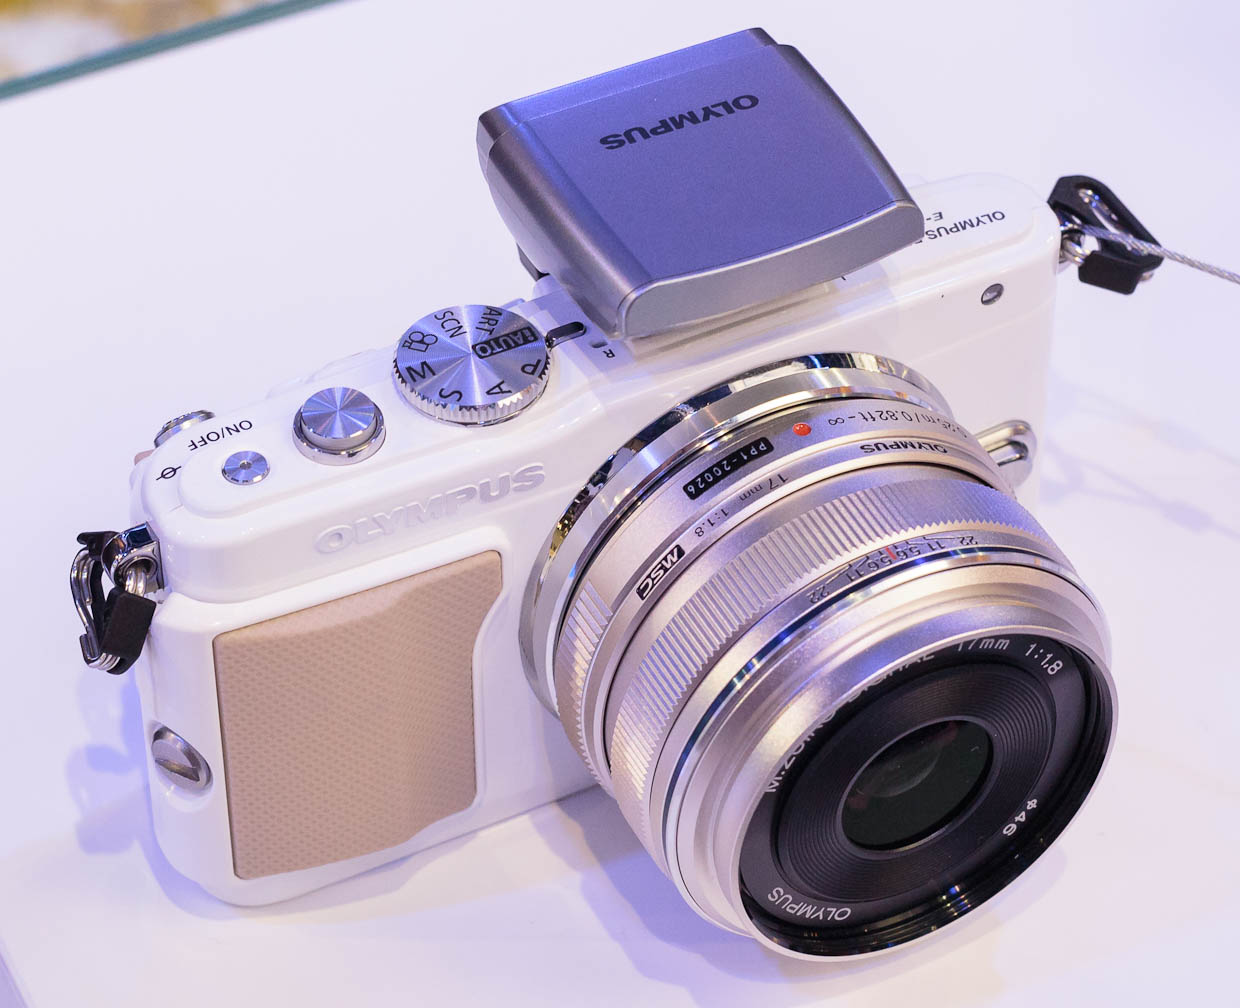 """The Olympus Pen E-PL5 is a new arrival in the Micro Four Thirds family that Olympus and Panasonic launched to start the """"mirrorless"""" movement for compact digital cameras with interchangeable lenses."""